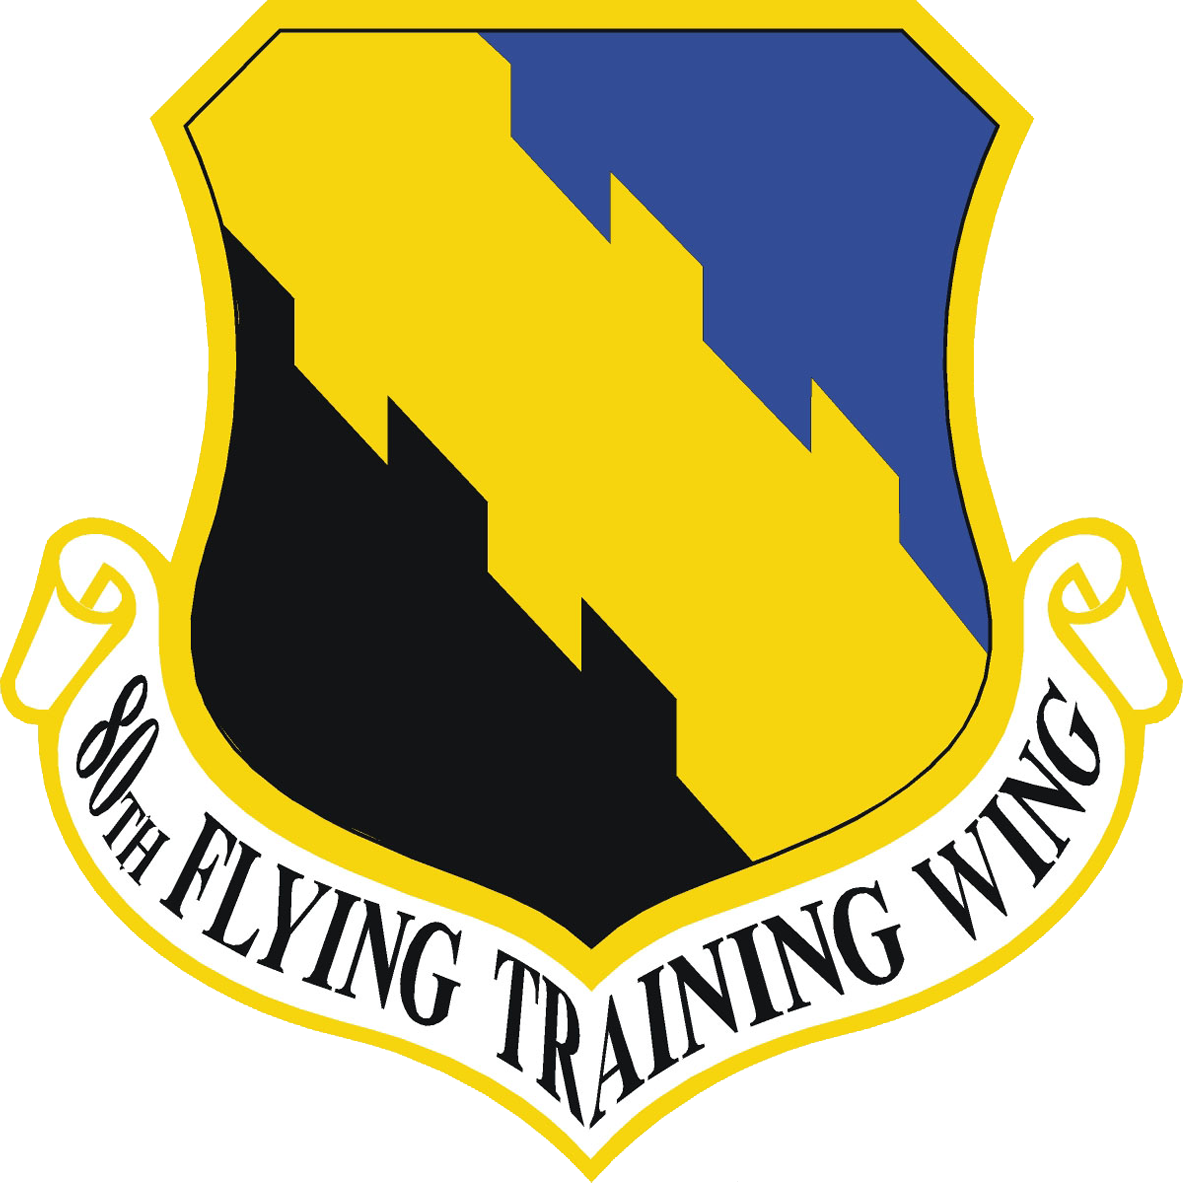 sheppard afb latino personals Spanish and latino family counseling is often the first step in making a genuine effort to stay free of alcohol and drugs nearby listings for sheppard afb, texas.